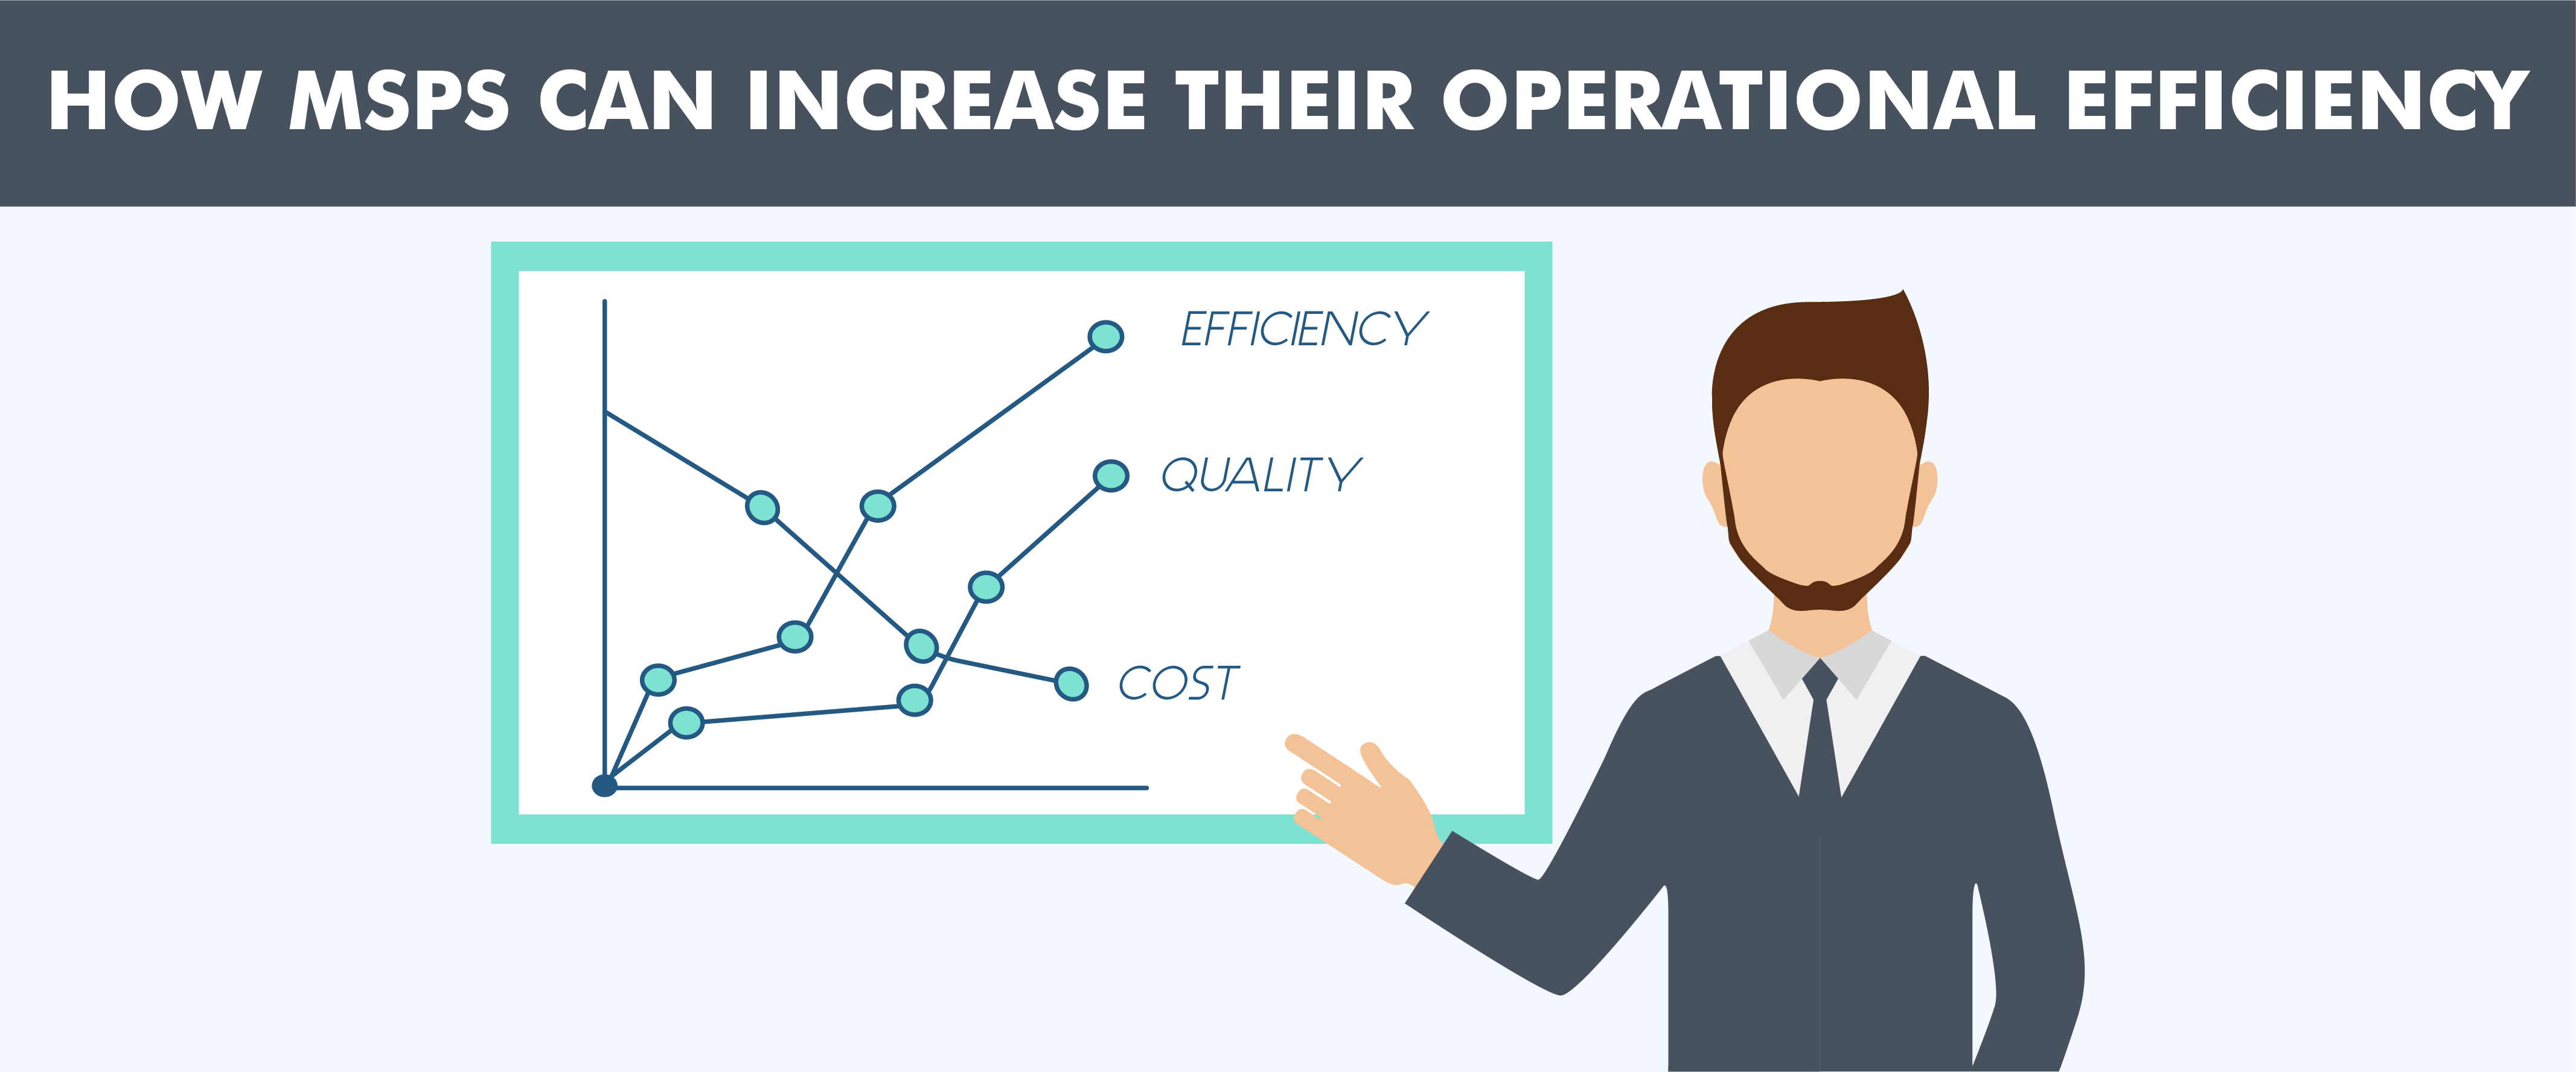 How MSPs can Increase their Operational Efficiency